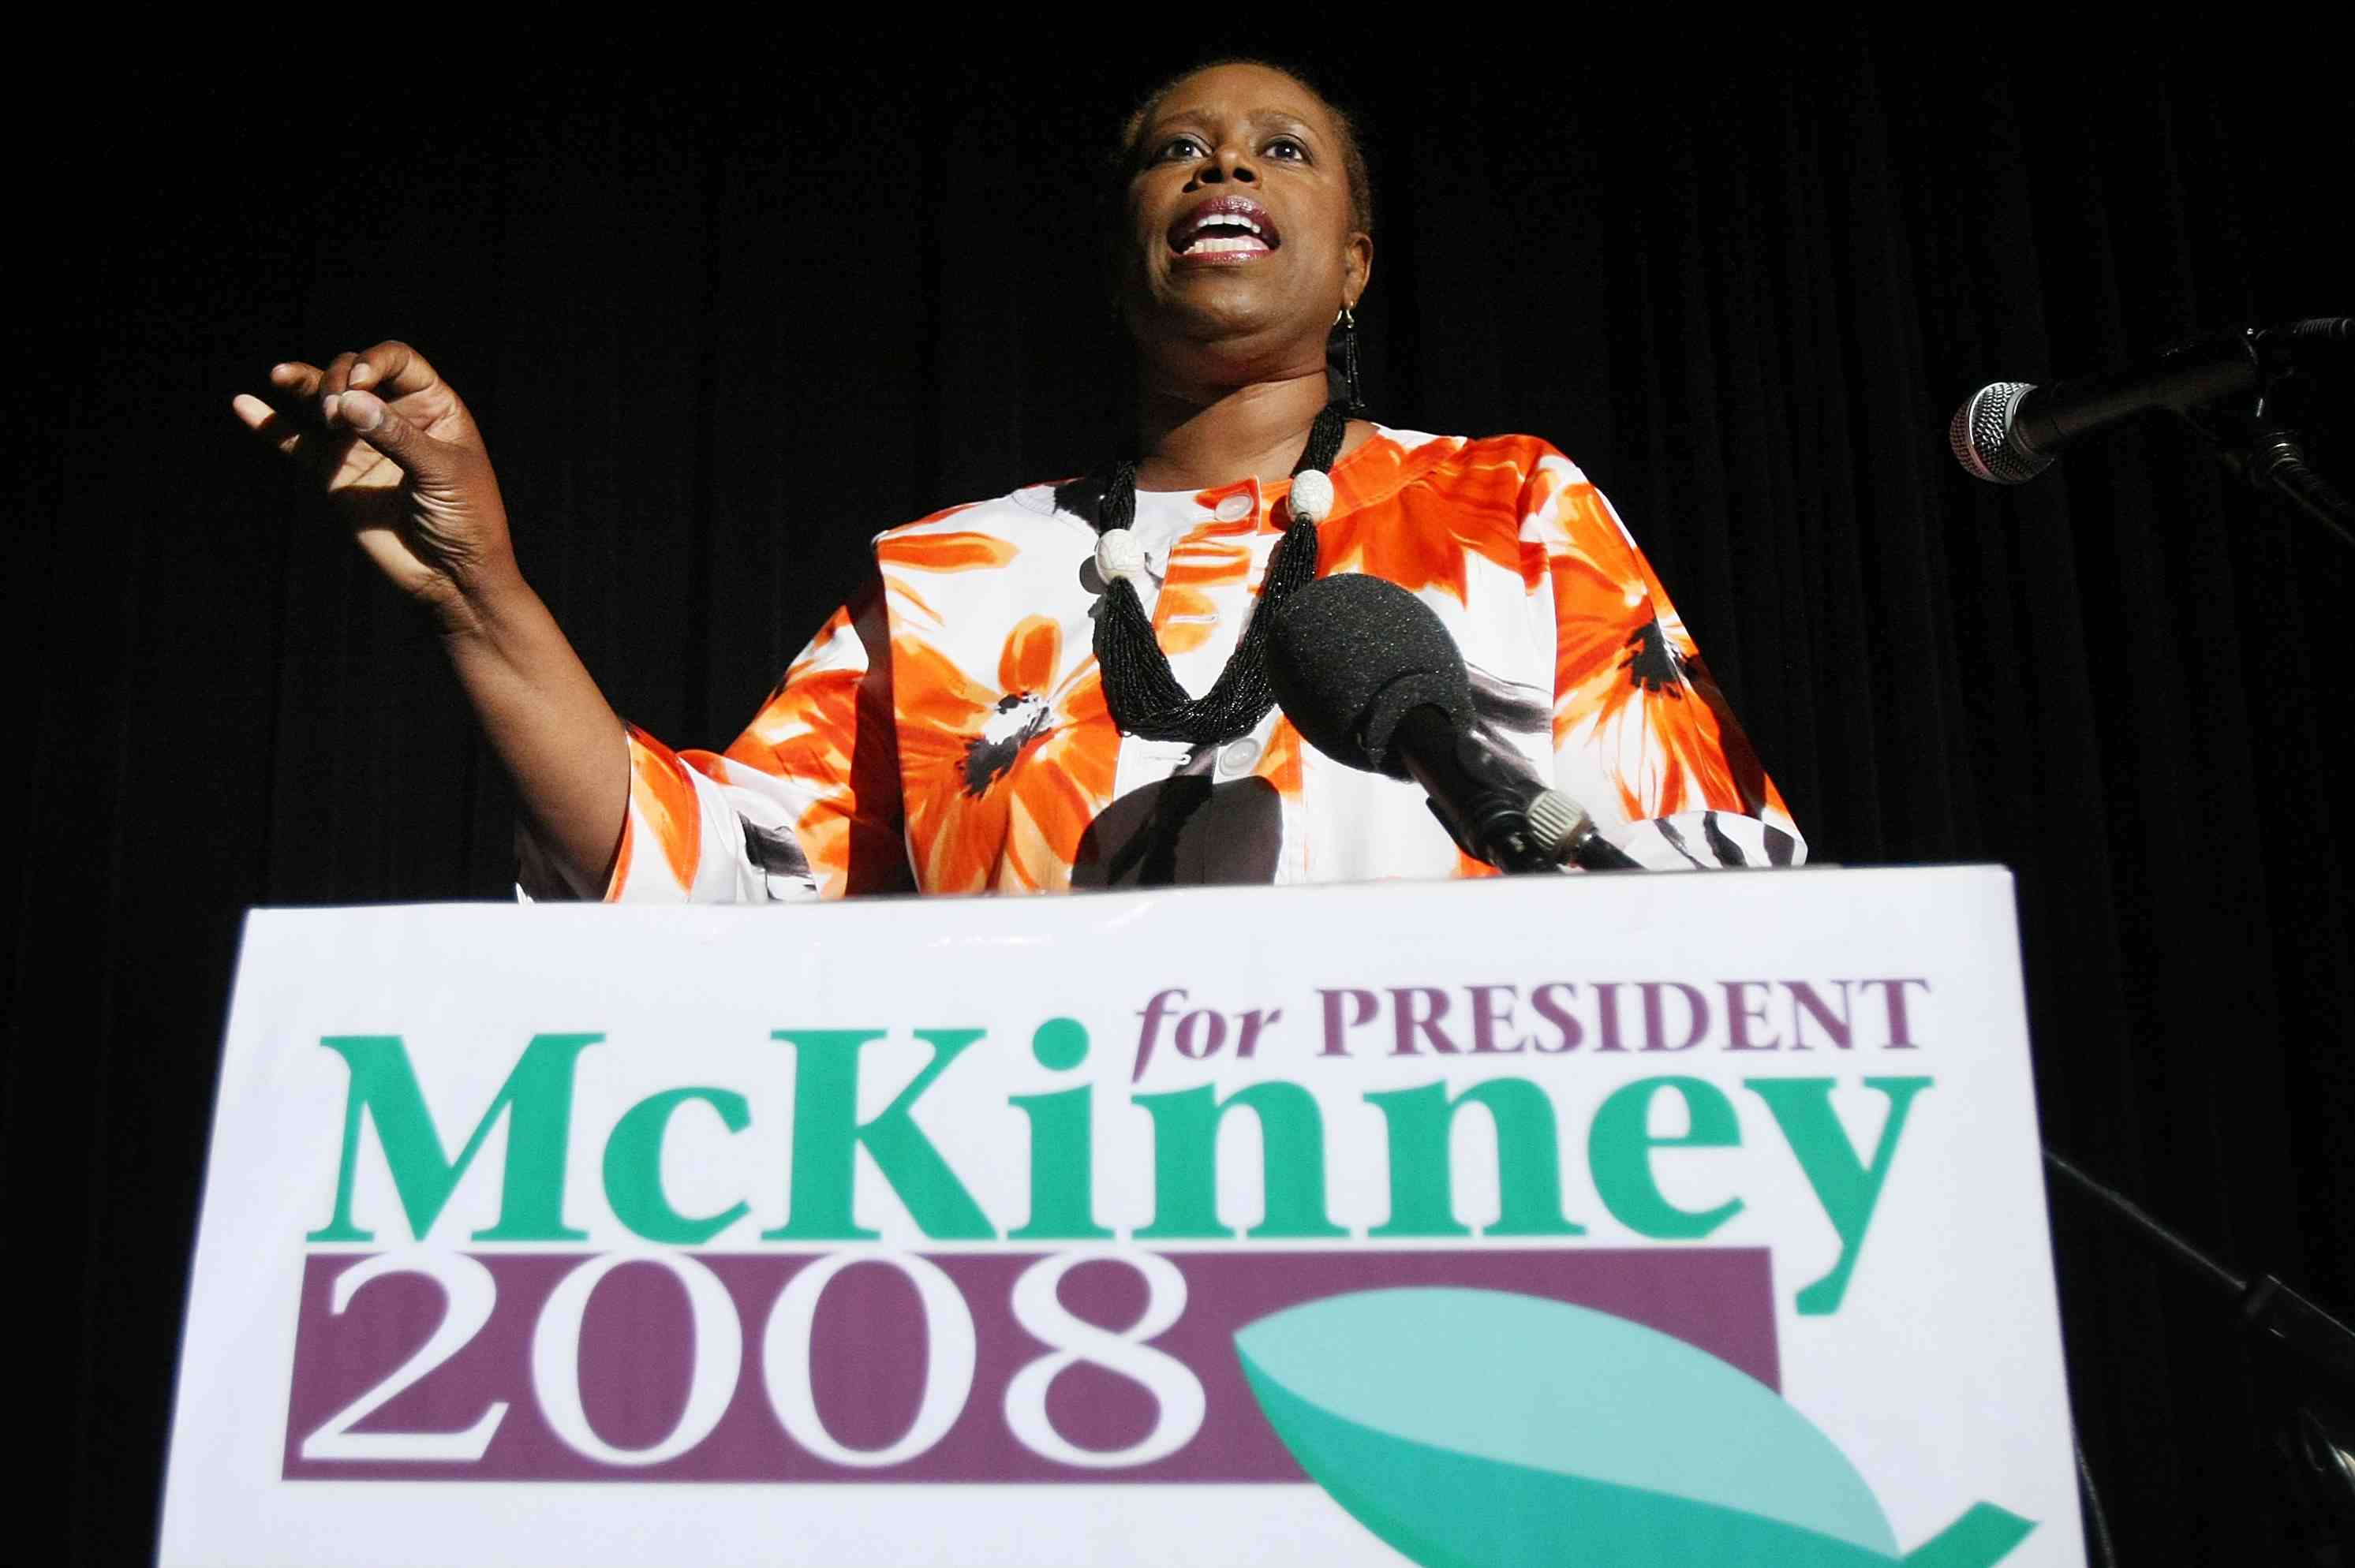 Green Party Presidential Candidate Cynthia McKinney, 2008